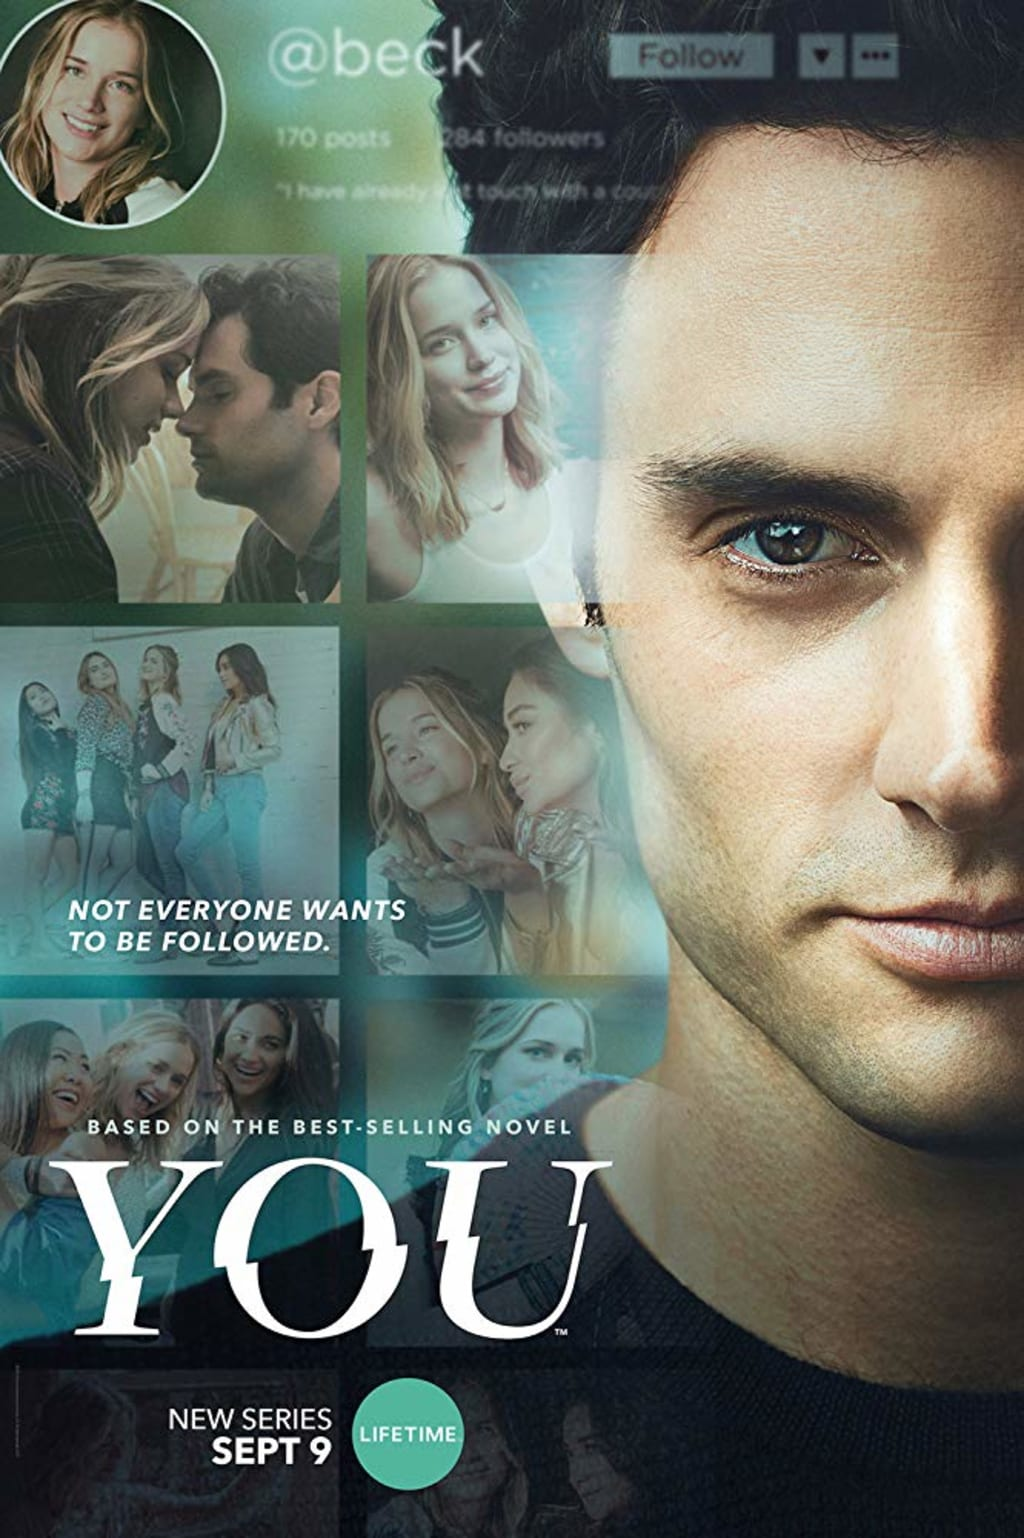 Review of 'You'